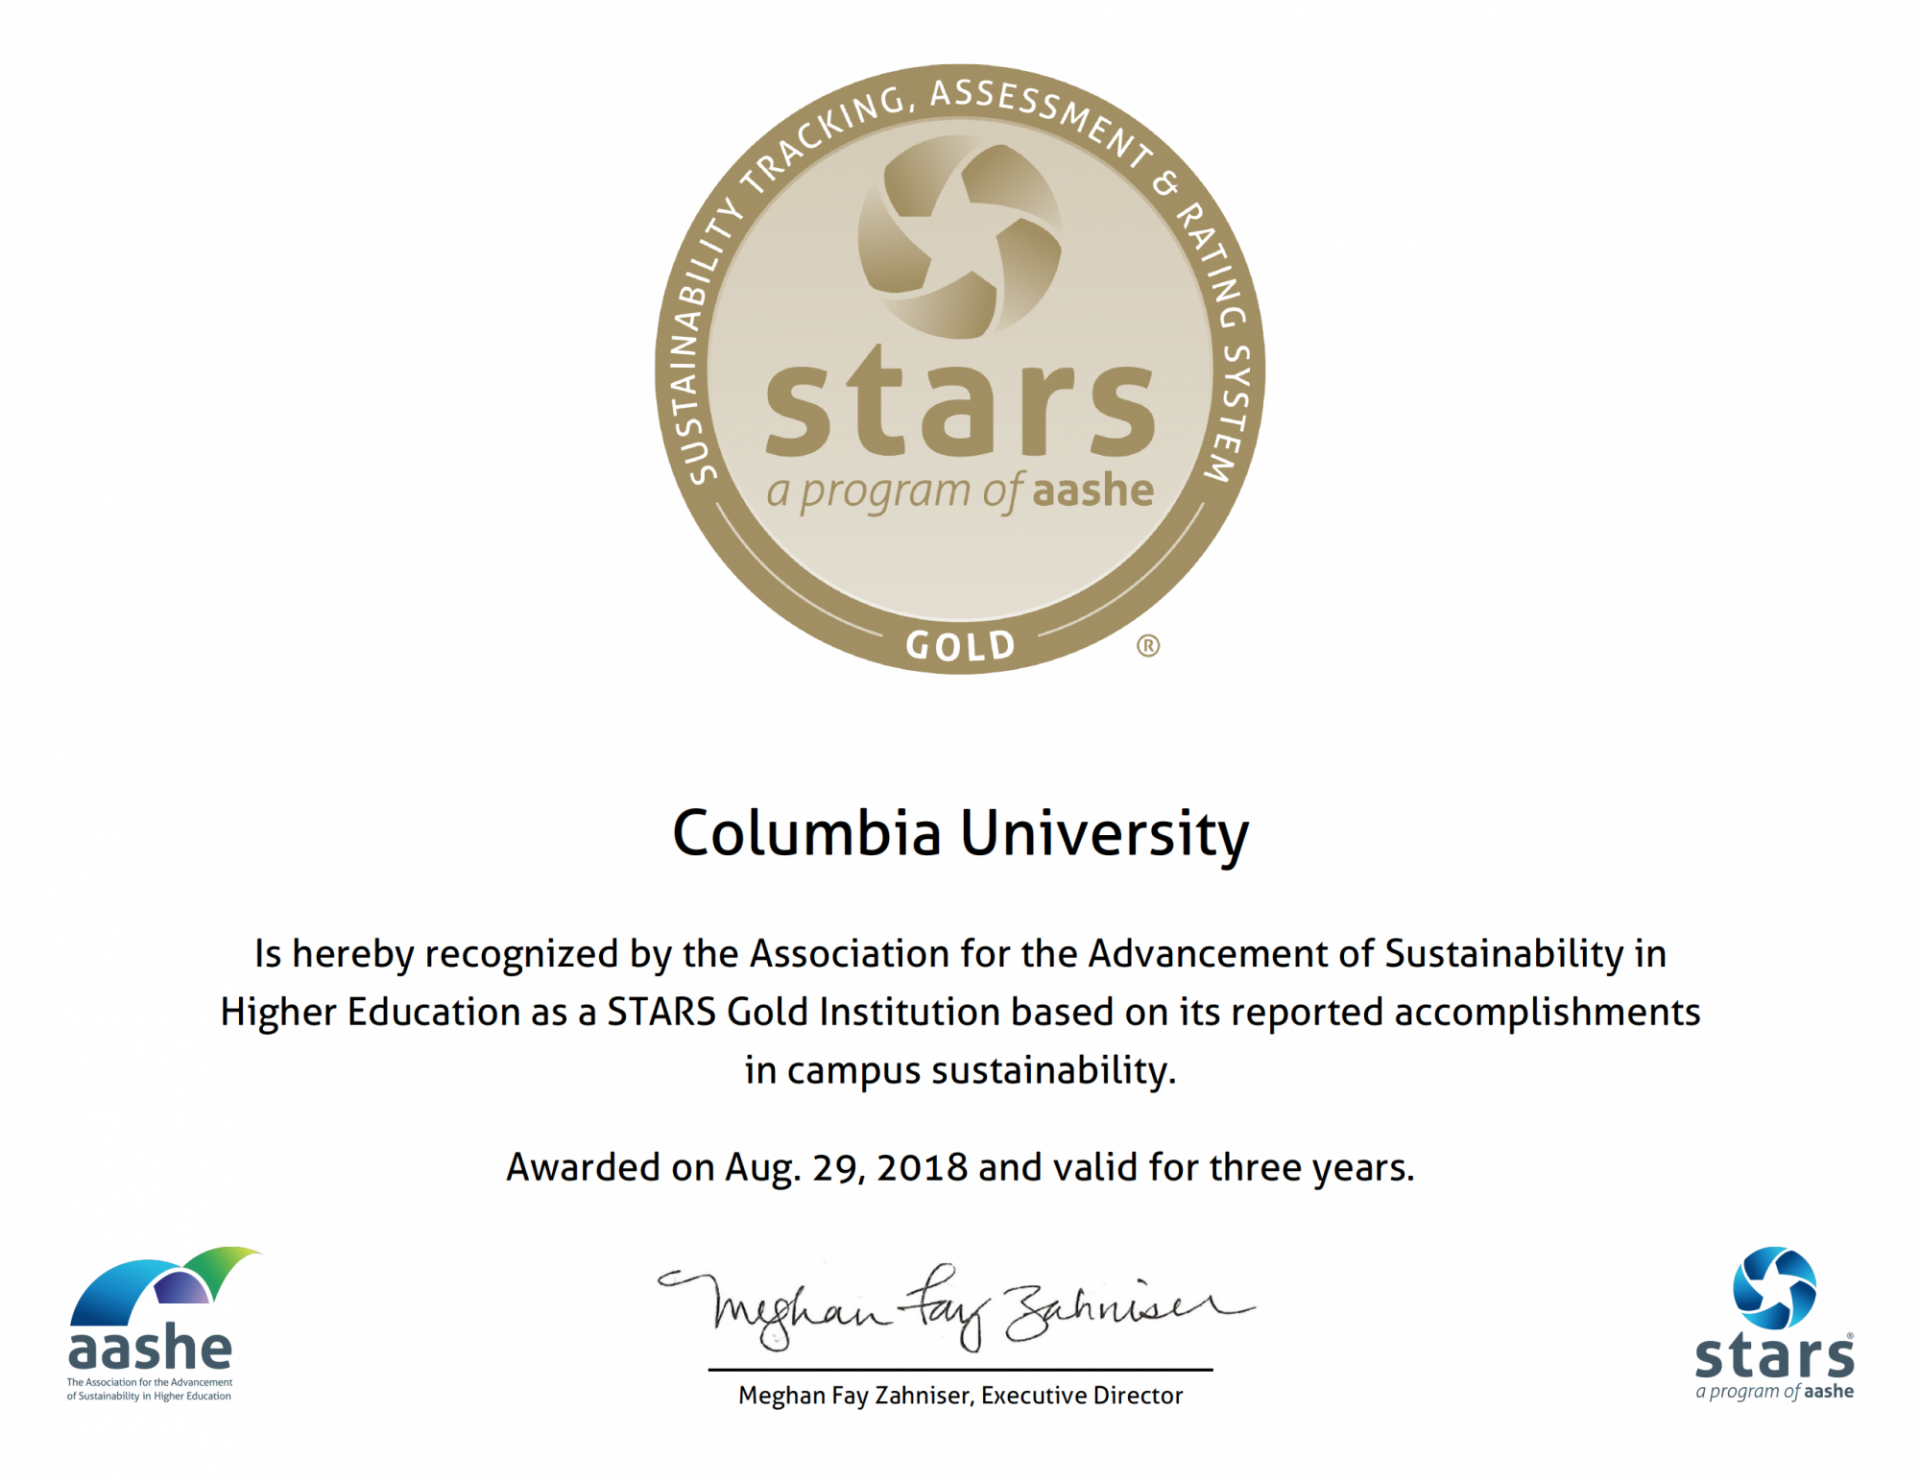 STARS certificate awarded to Columbia for its ccomplishments in campus sustainablity